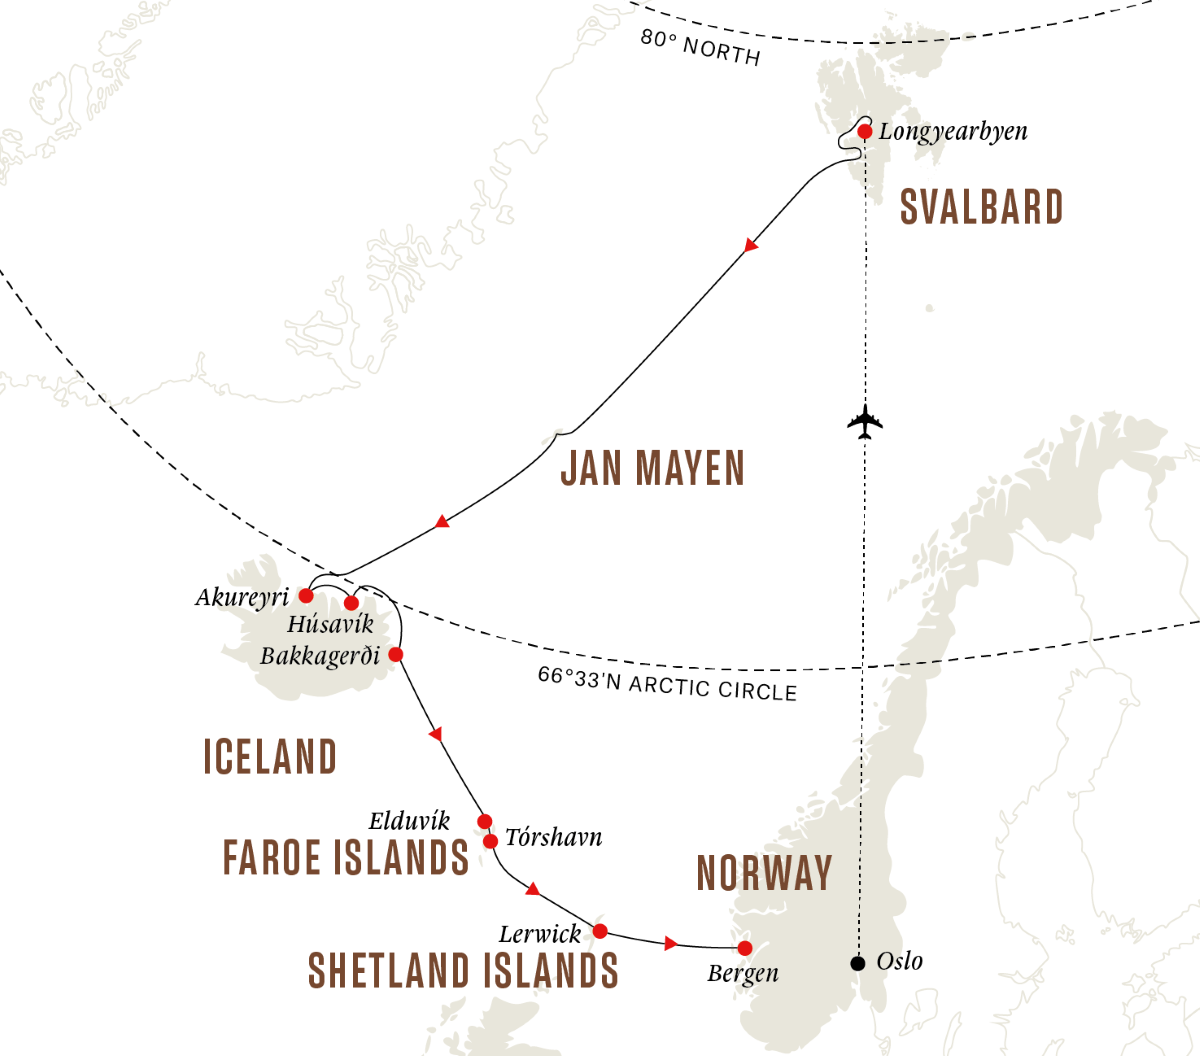 Spitsbergen, Iceland, Faroe Islands – Island Hopping In and Around the Arctic (Southbound)